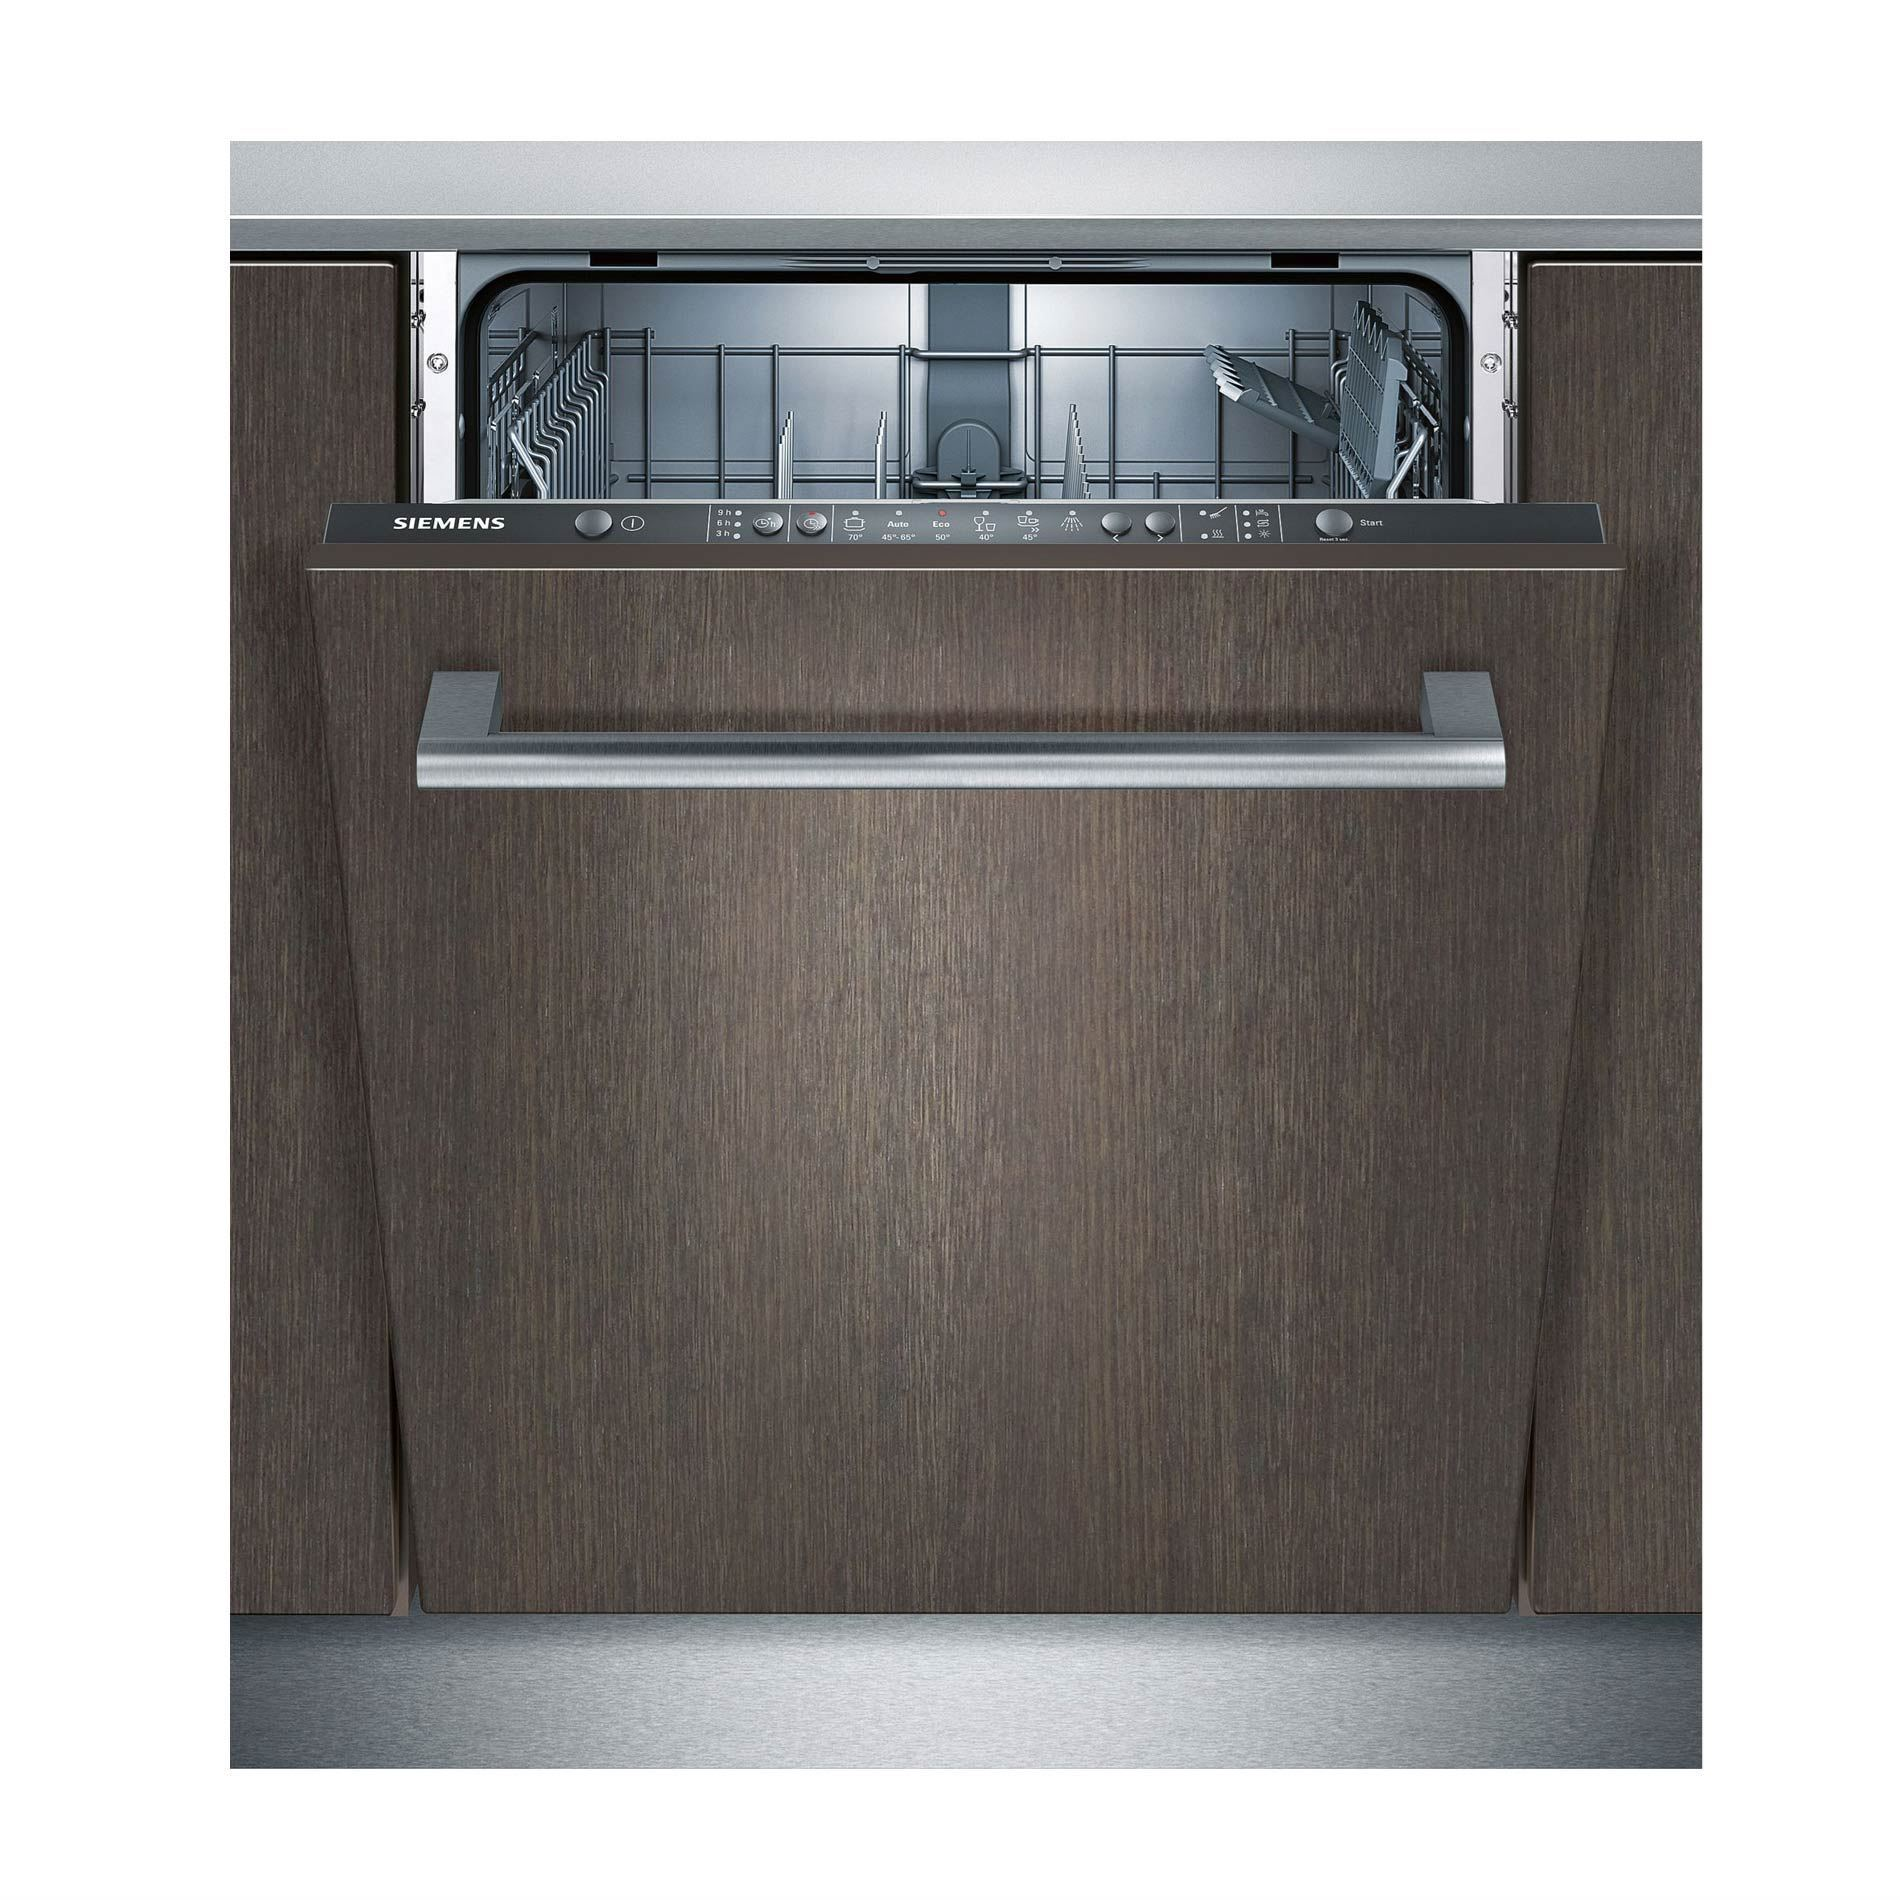 Picture of SN66D000GB Fully Integrated Dishwasher